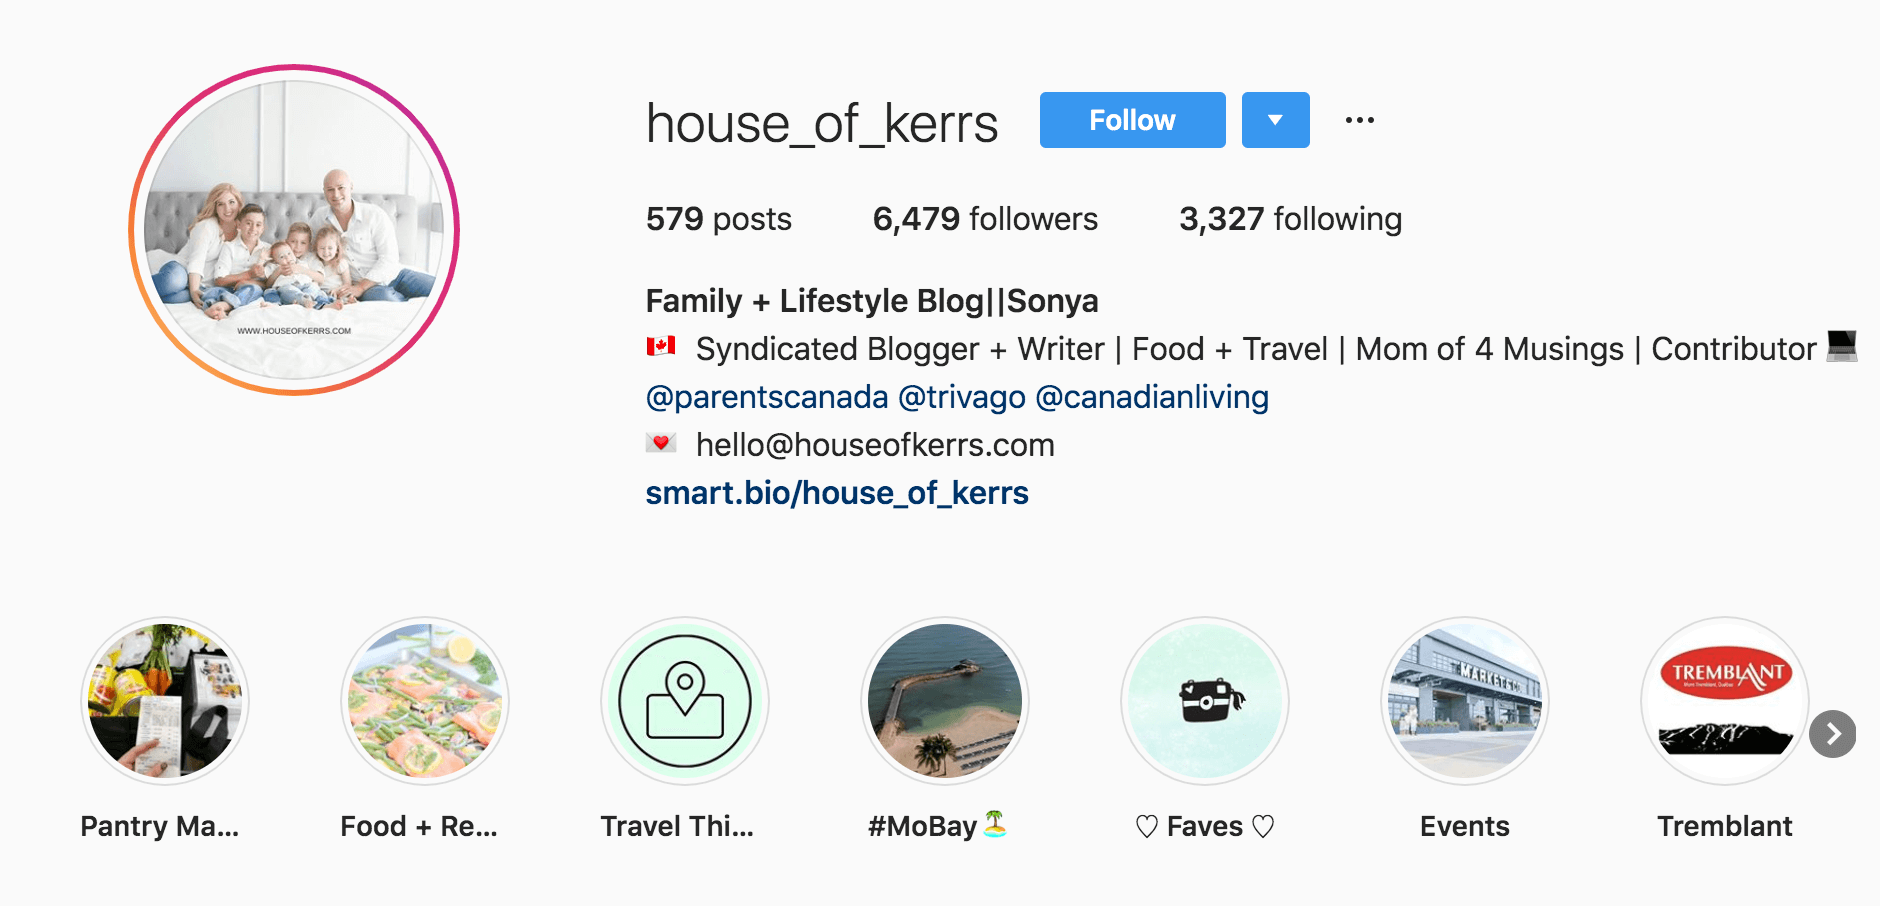 House of Kerrs